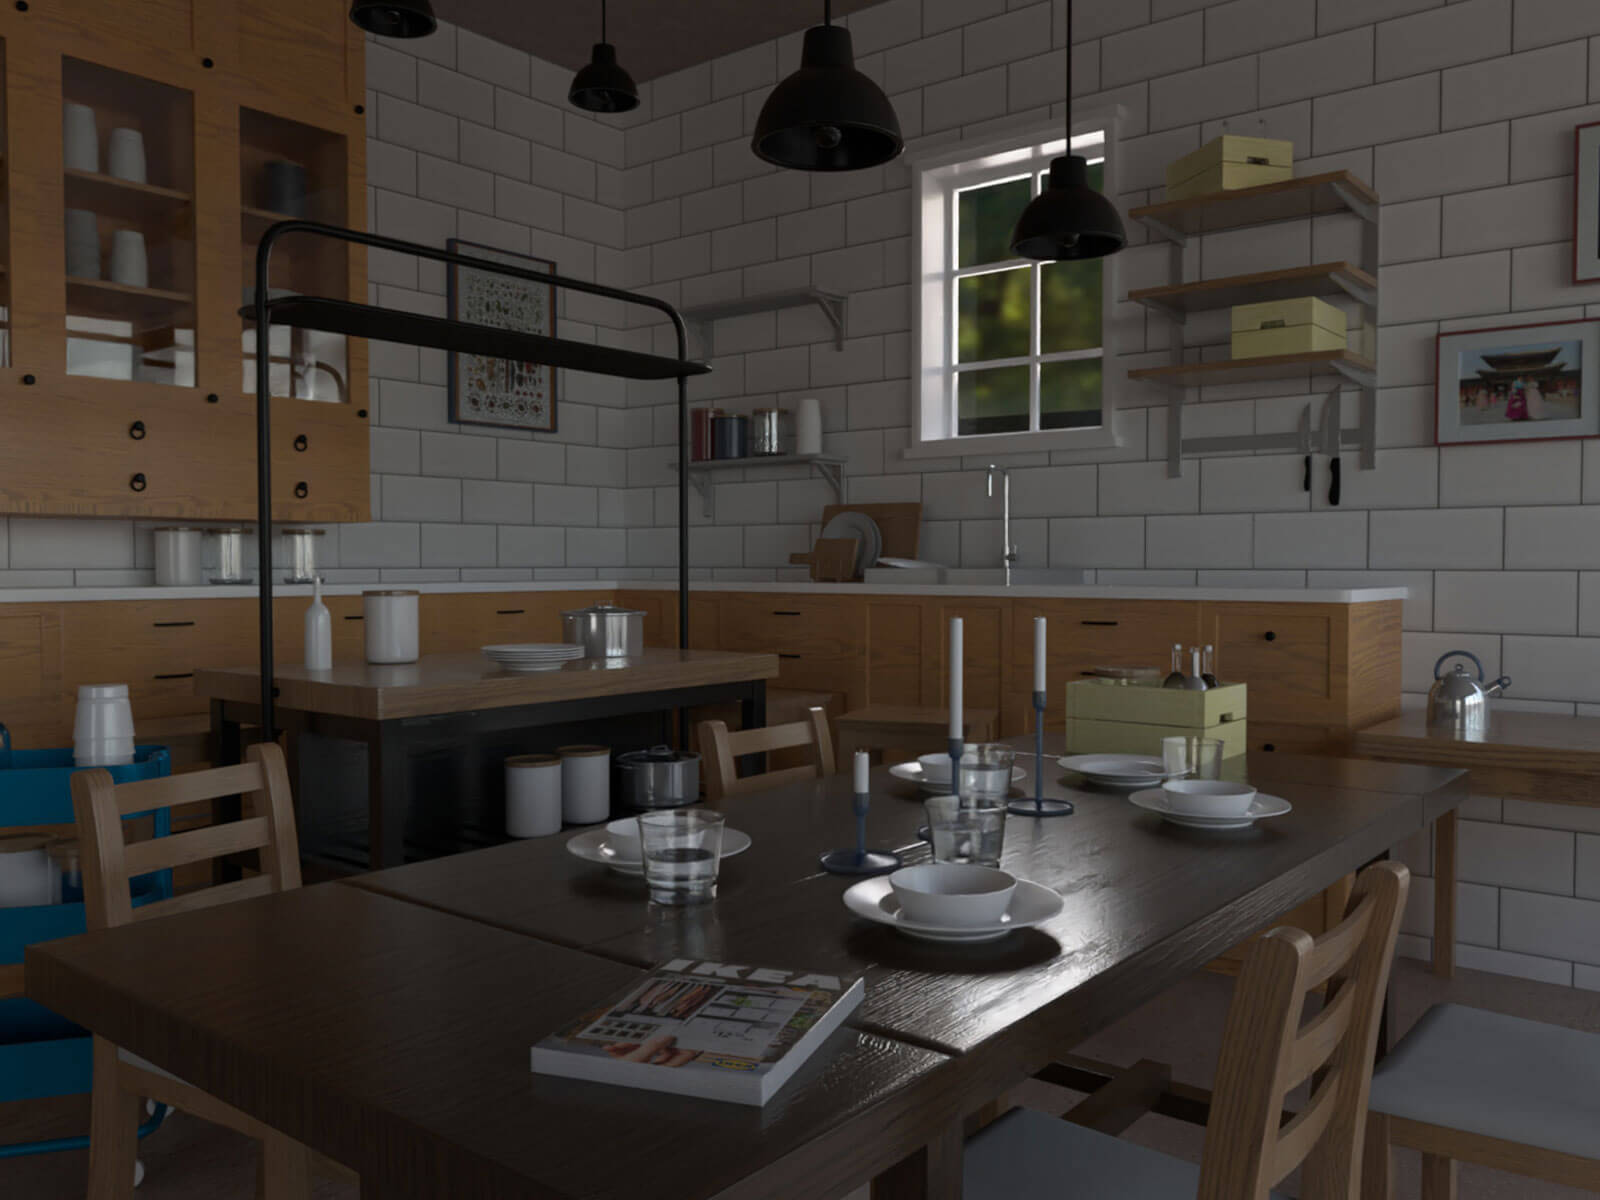 3D-modeled scene of a corner of a kitchen with a dining area in the foreground.